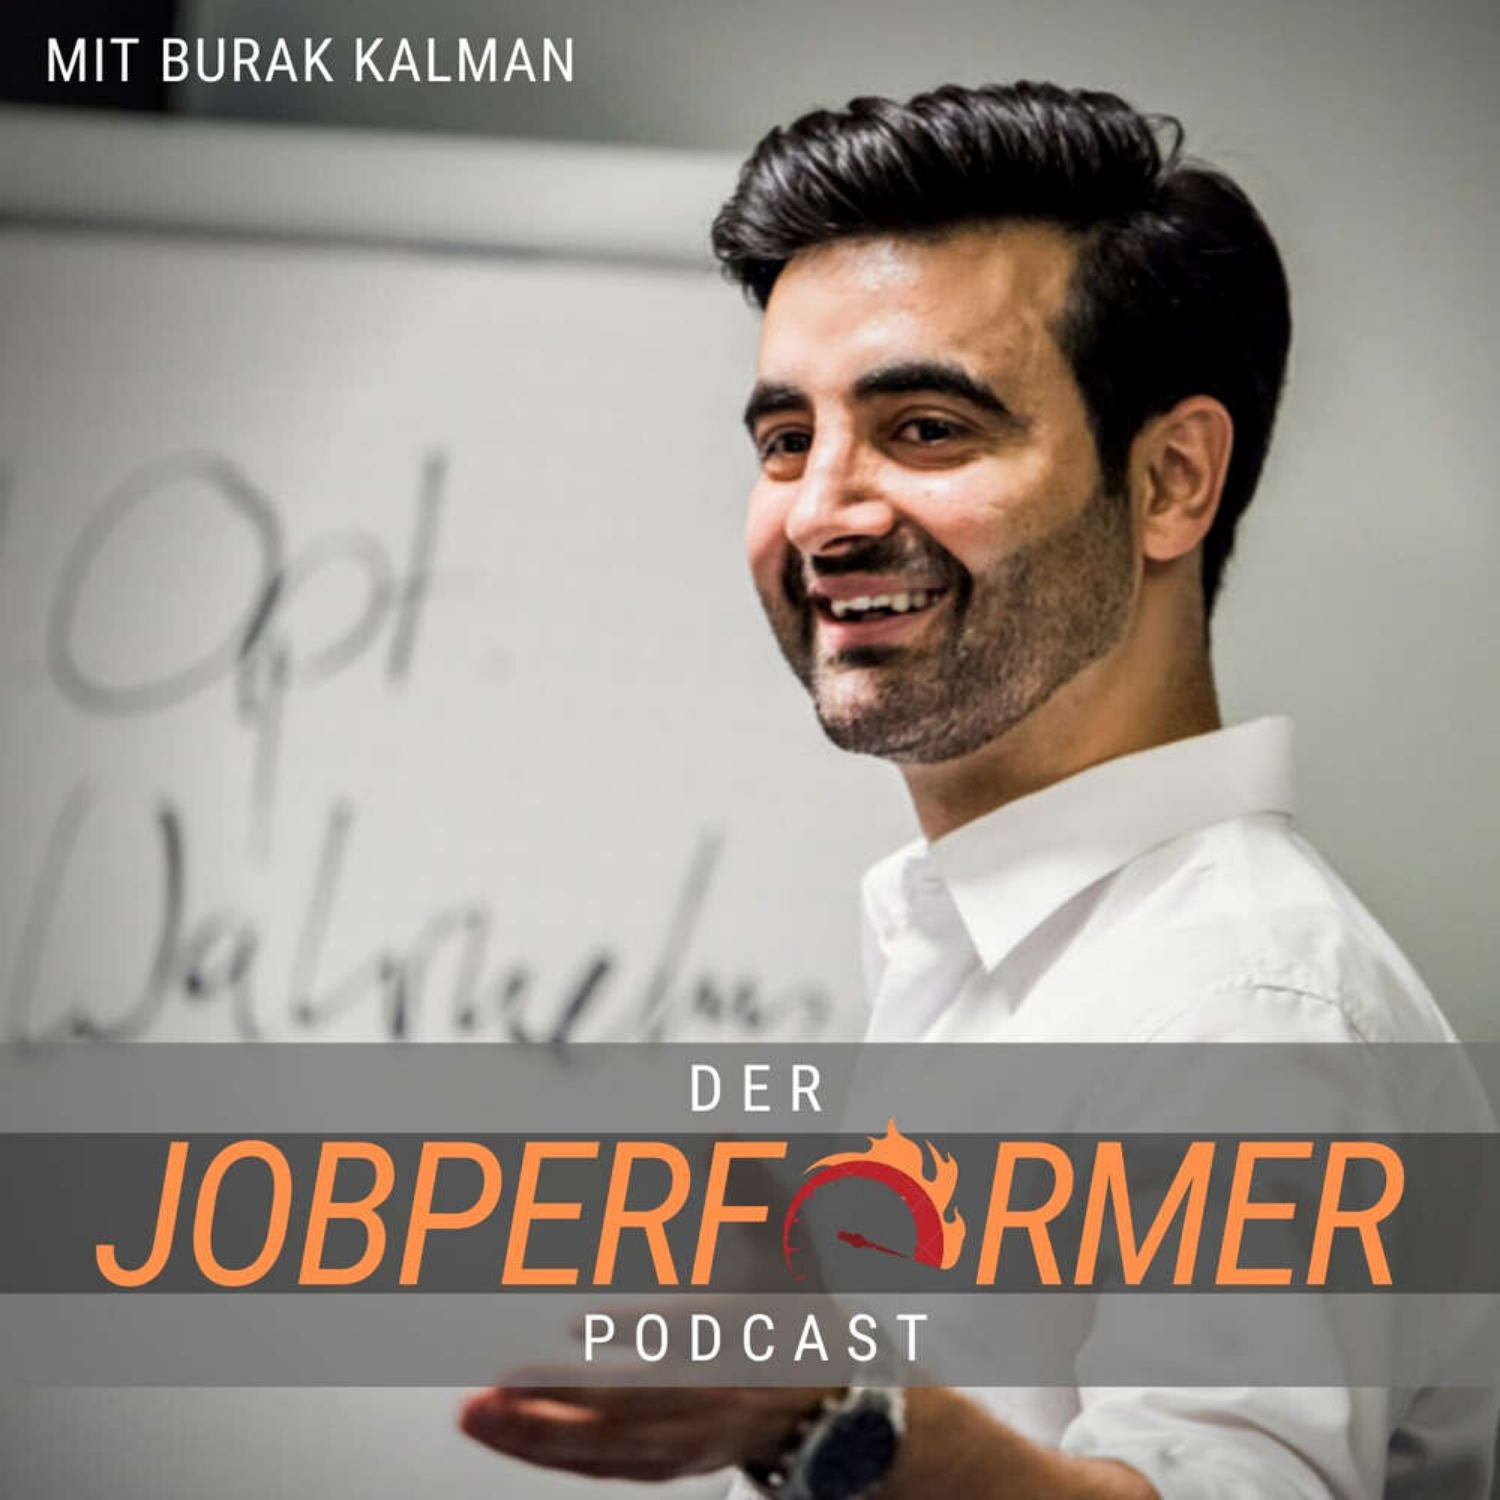 Podcast Marketing Der Jobperformer Podcast